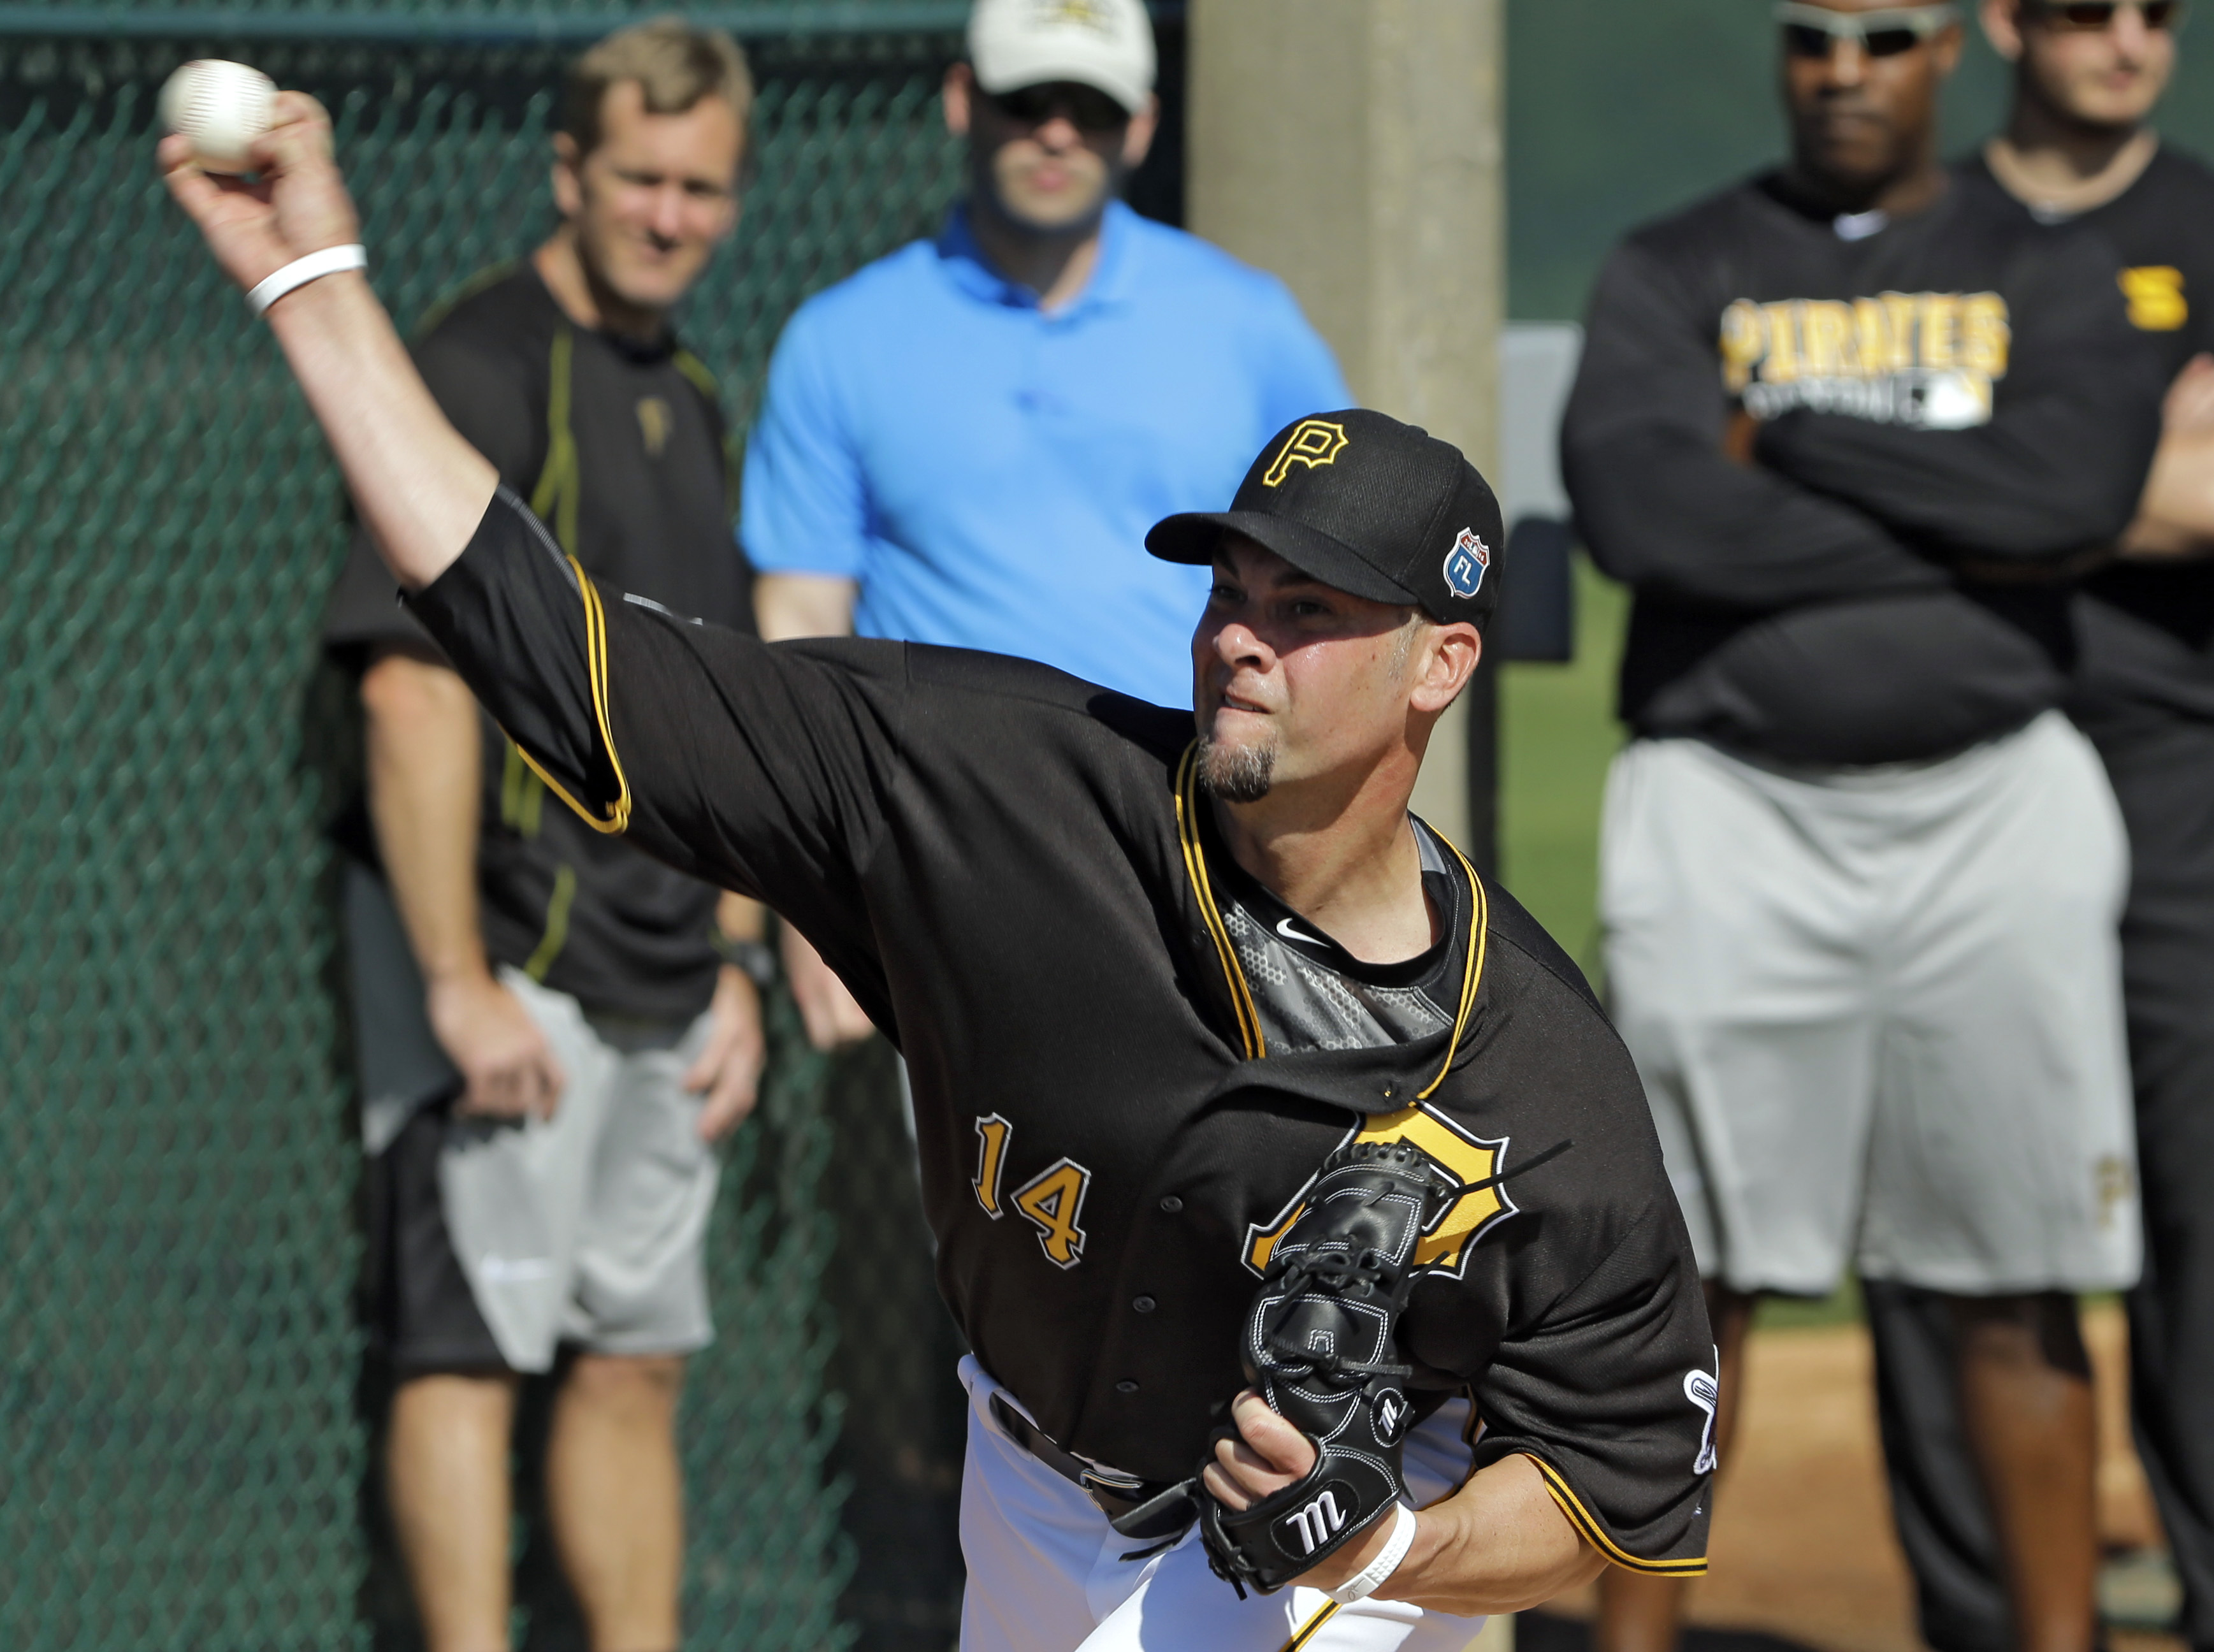 FILE - In this Feb. 20, 2016, file photo, Pittsburgh Pirates pitcher Ryan Vogelsong throws in the bullpen during a spring training baseball workout, in Bradenton, Fla. Vogelsong hopes his second act with the Pirates goes better than his first. (AP Photo/C